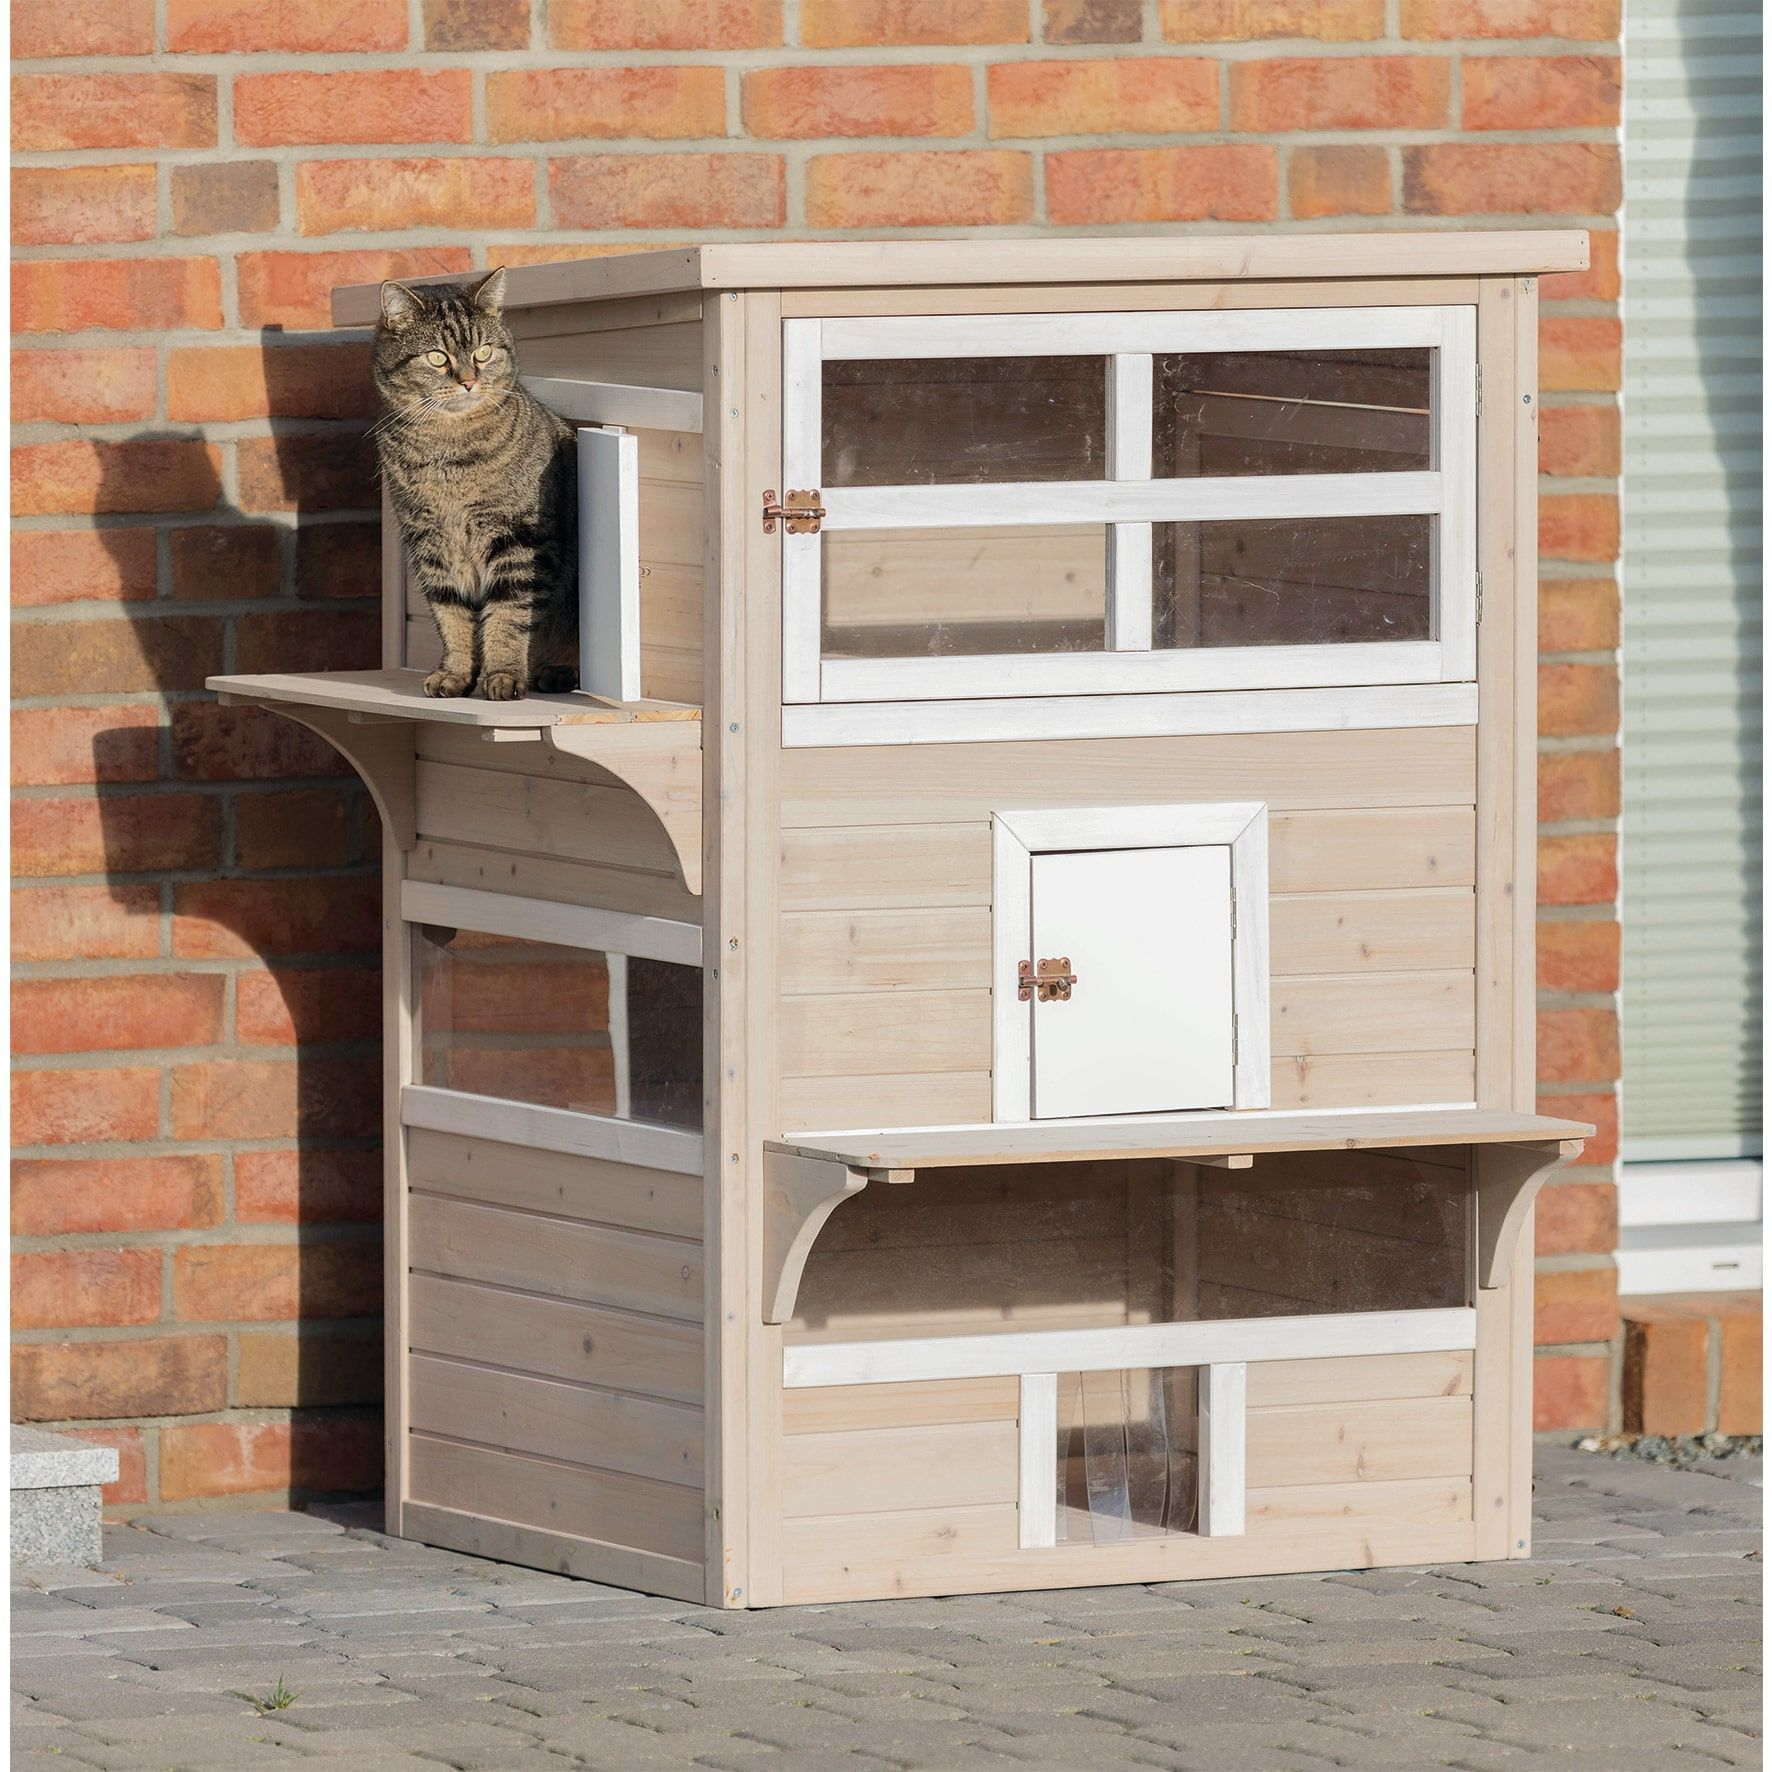 Trixie Pet Products Xxl 3 Story Wooden Outdoor Cat House Greywhite